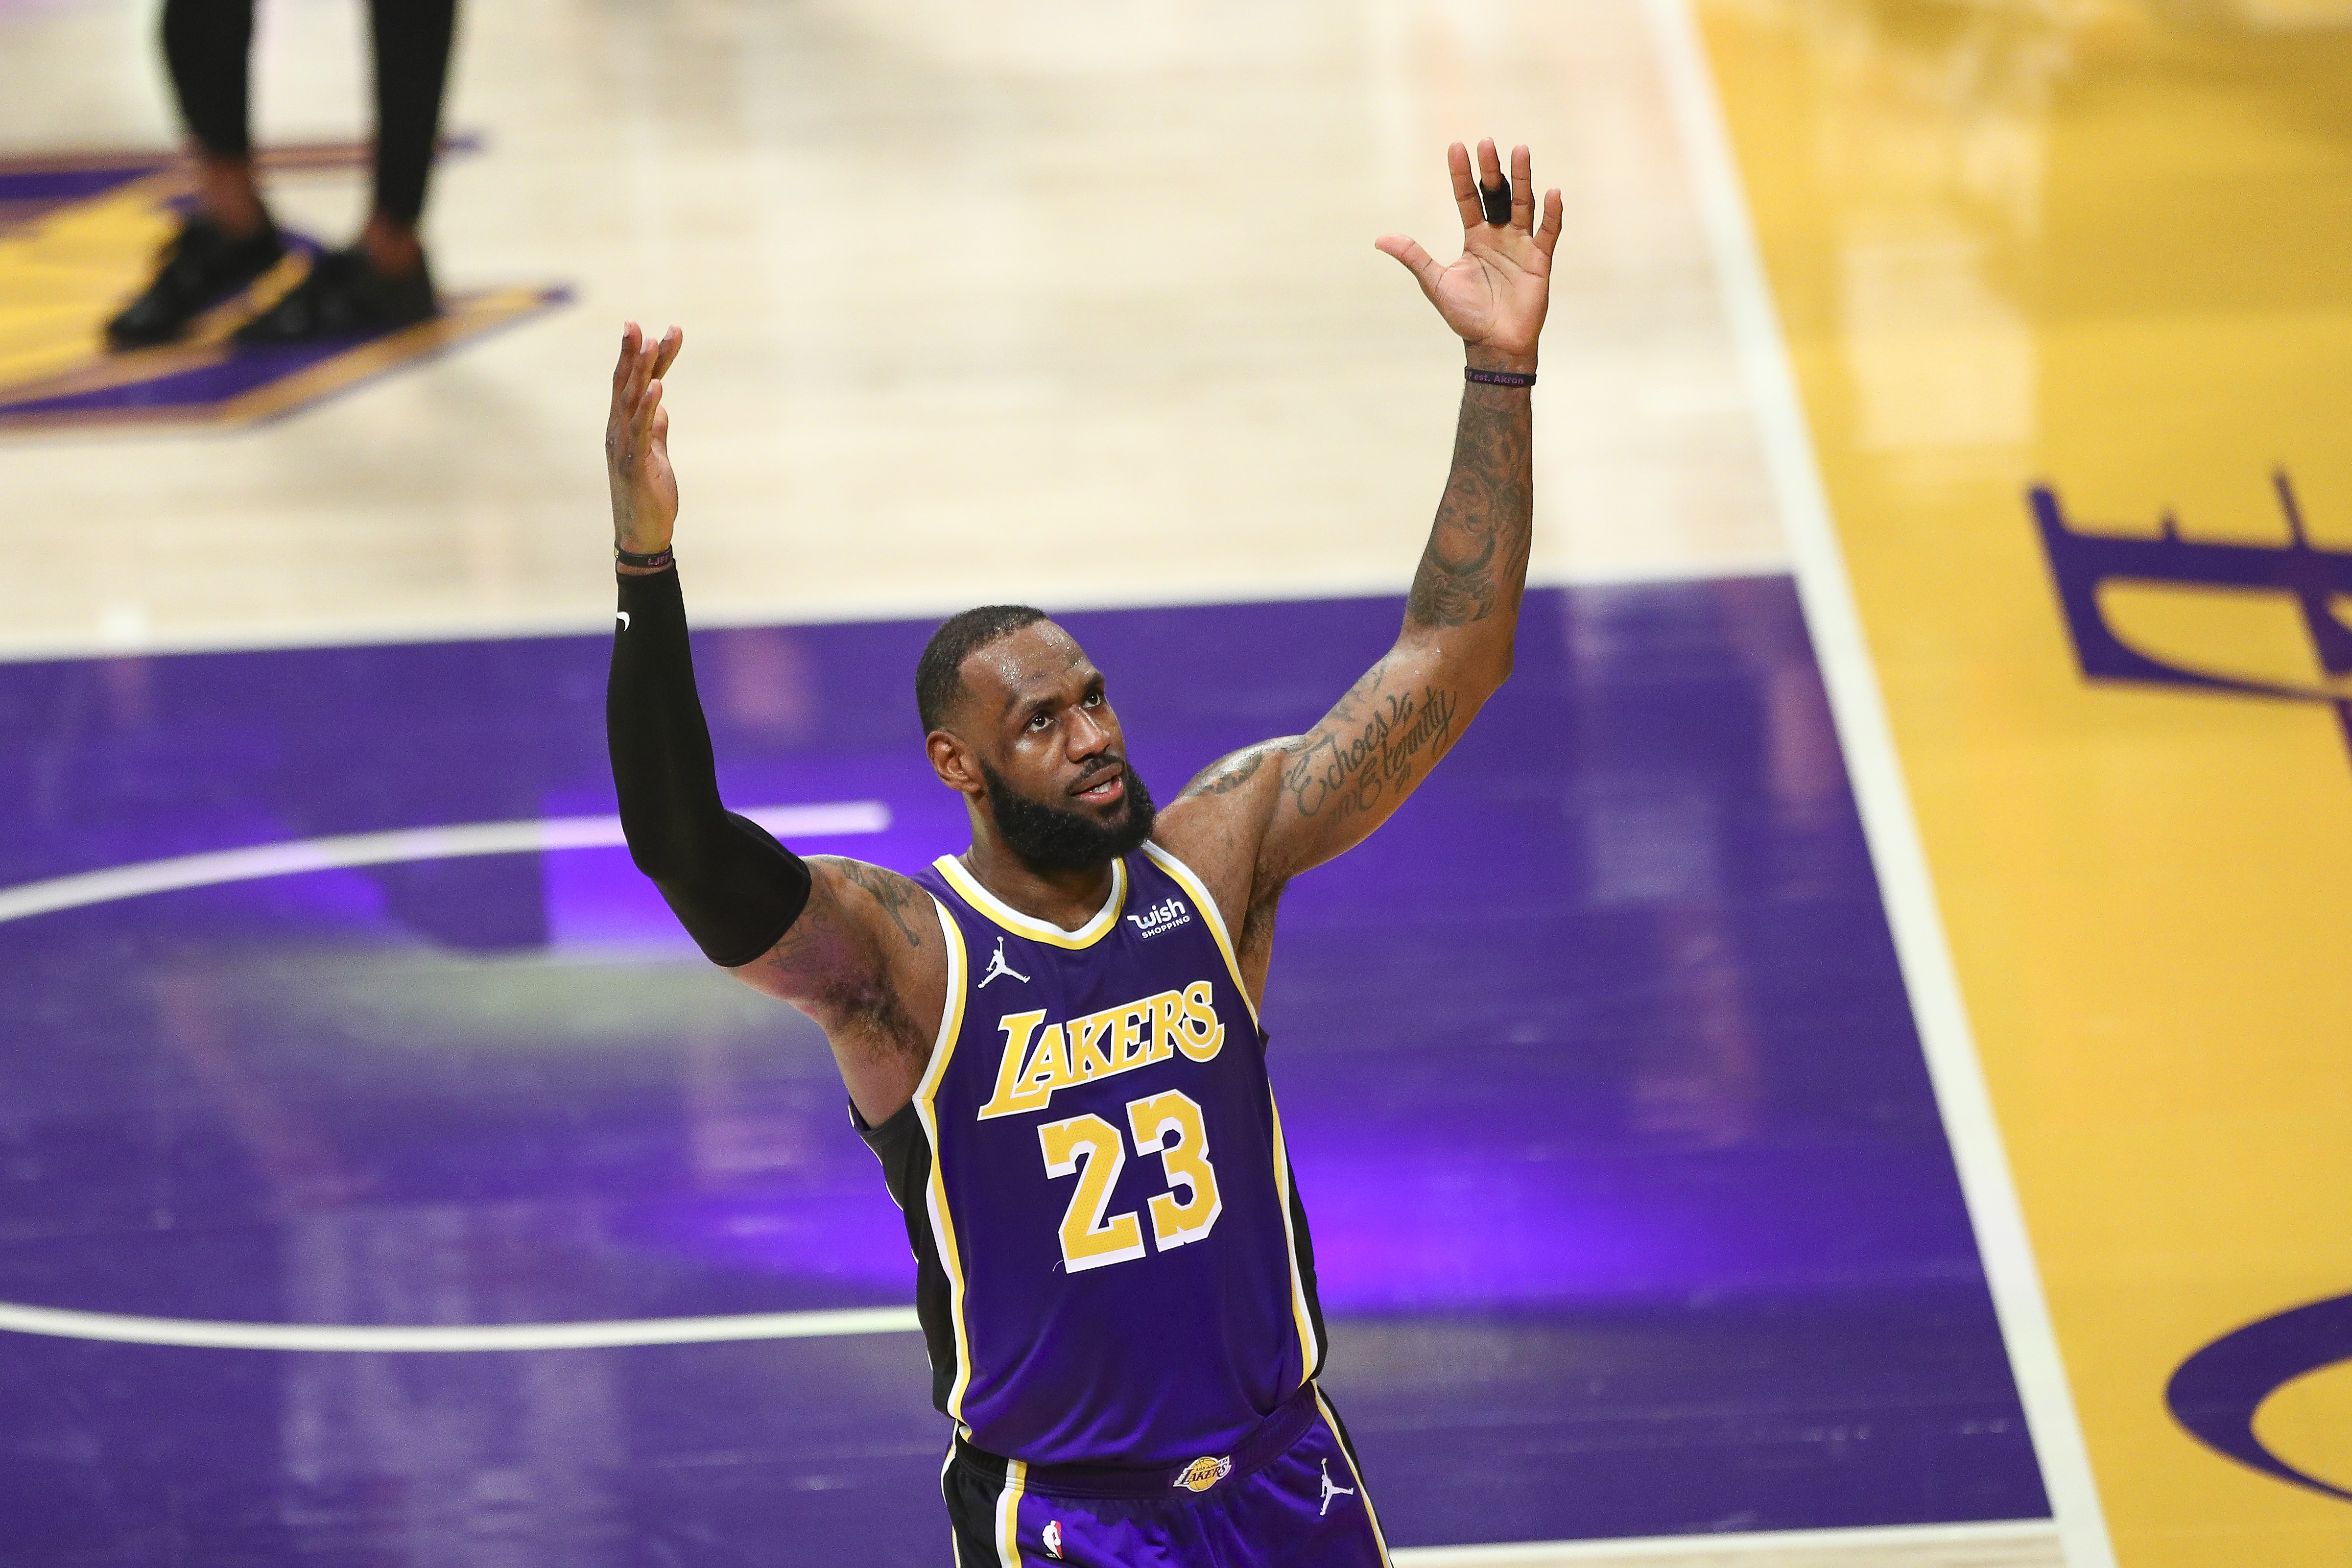 LeBron James Has Oddly Never Posted His Career Averages of 27 Points, 7 Assists, and 7 Rebounds in a Single Game in the NBA